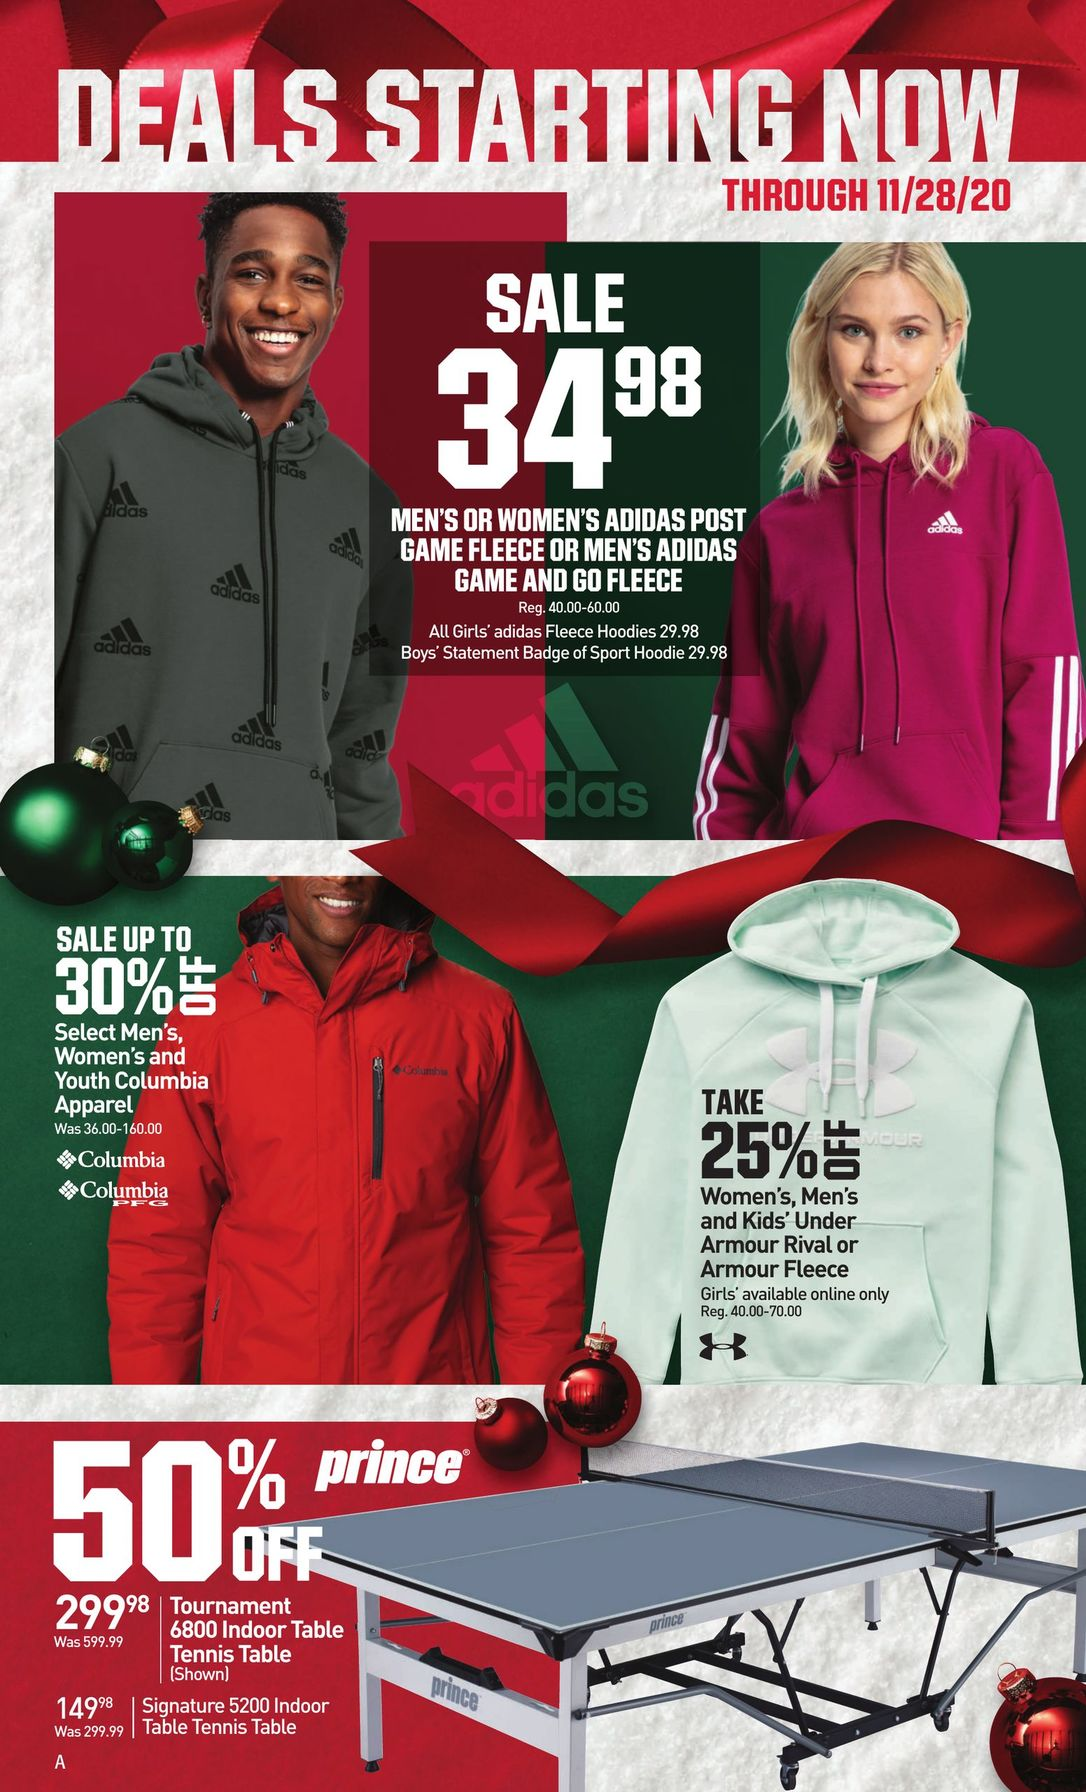 Dick's Sporting Goods Black Friday 2020 Page 2